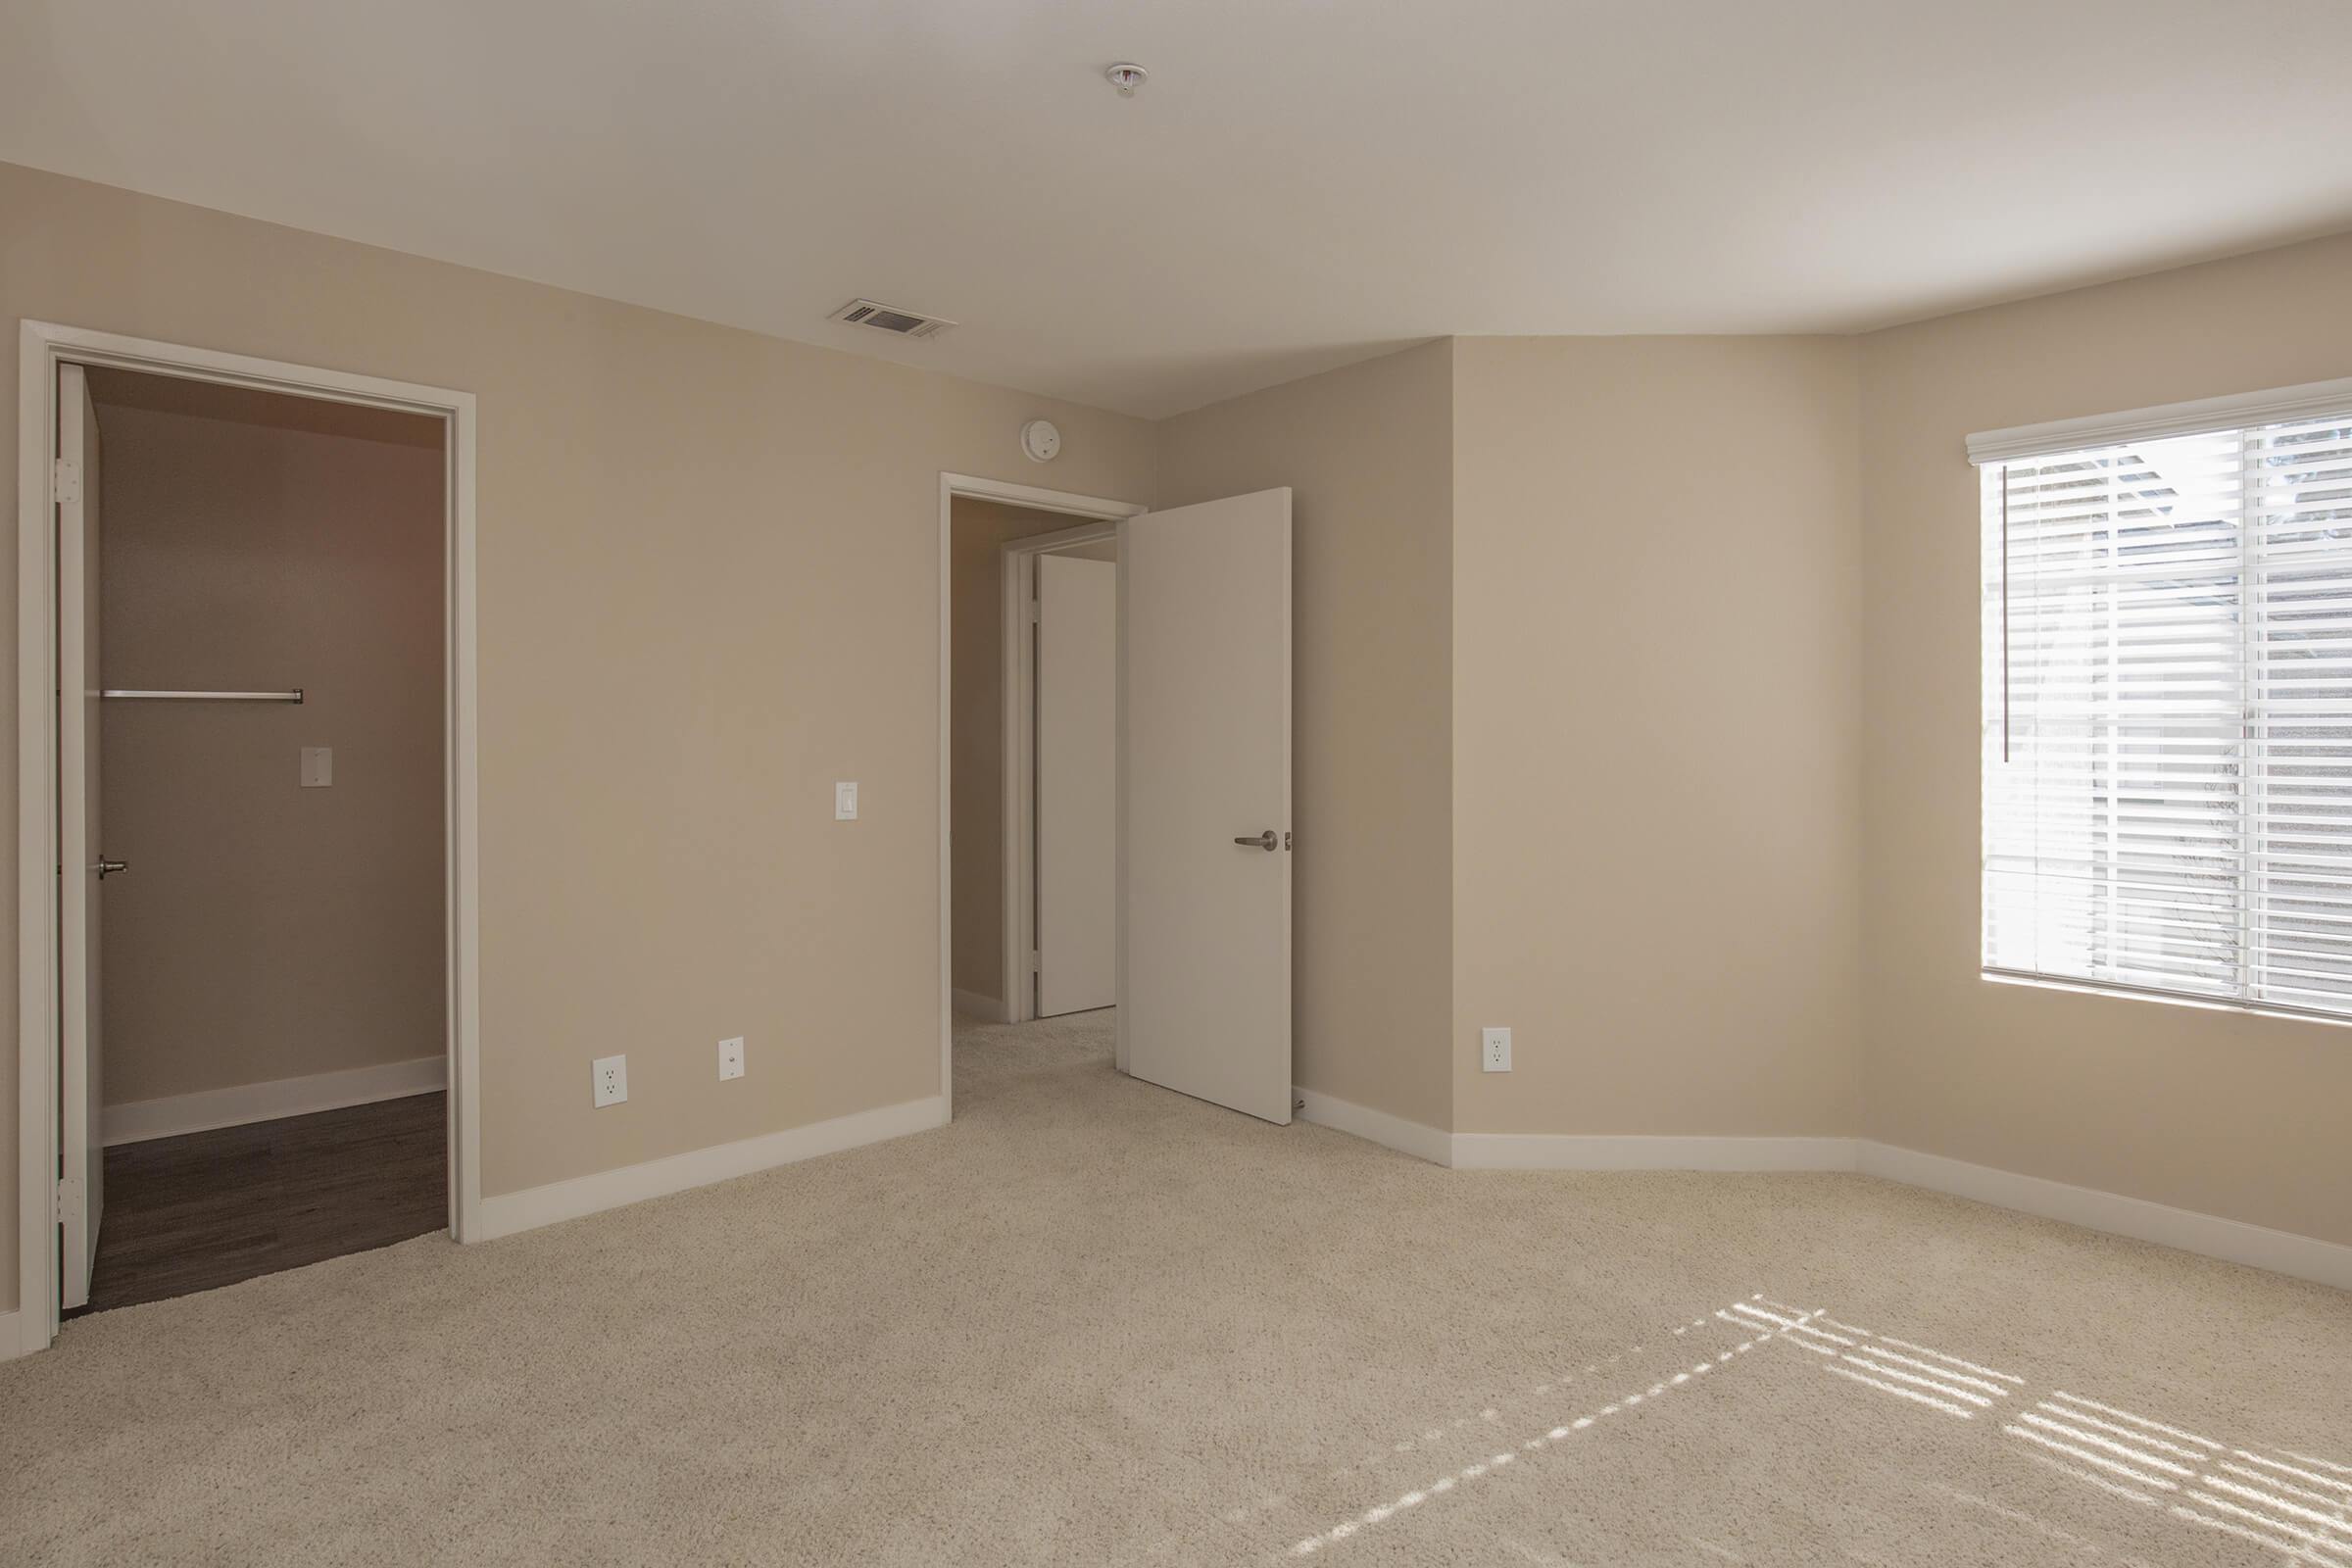 A vacant bedroom with open closet